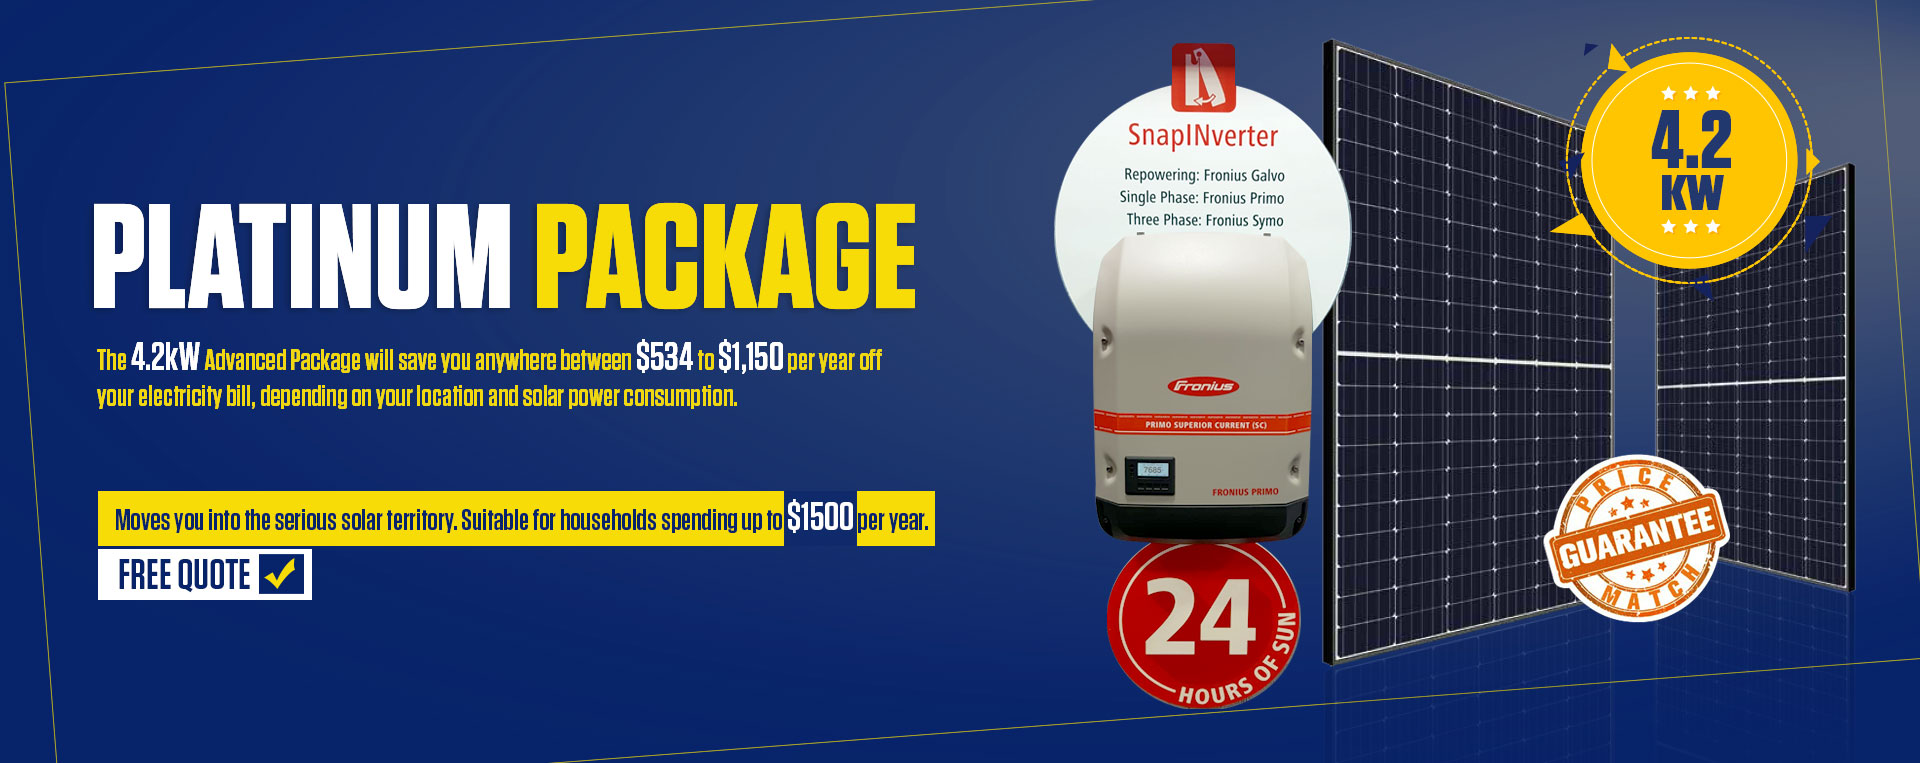 4.2 KW Advanced Package